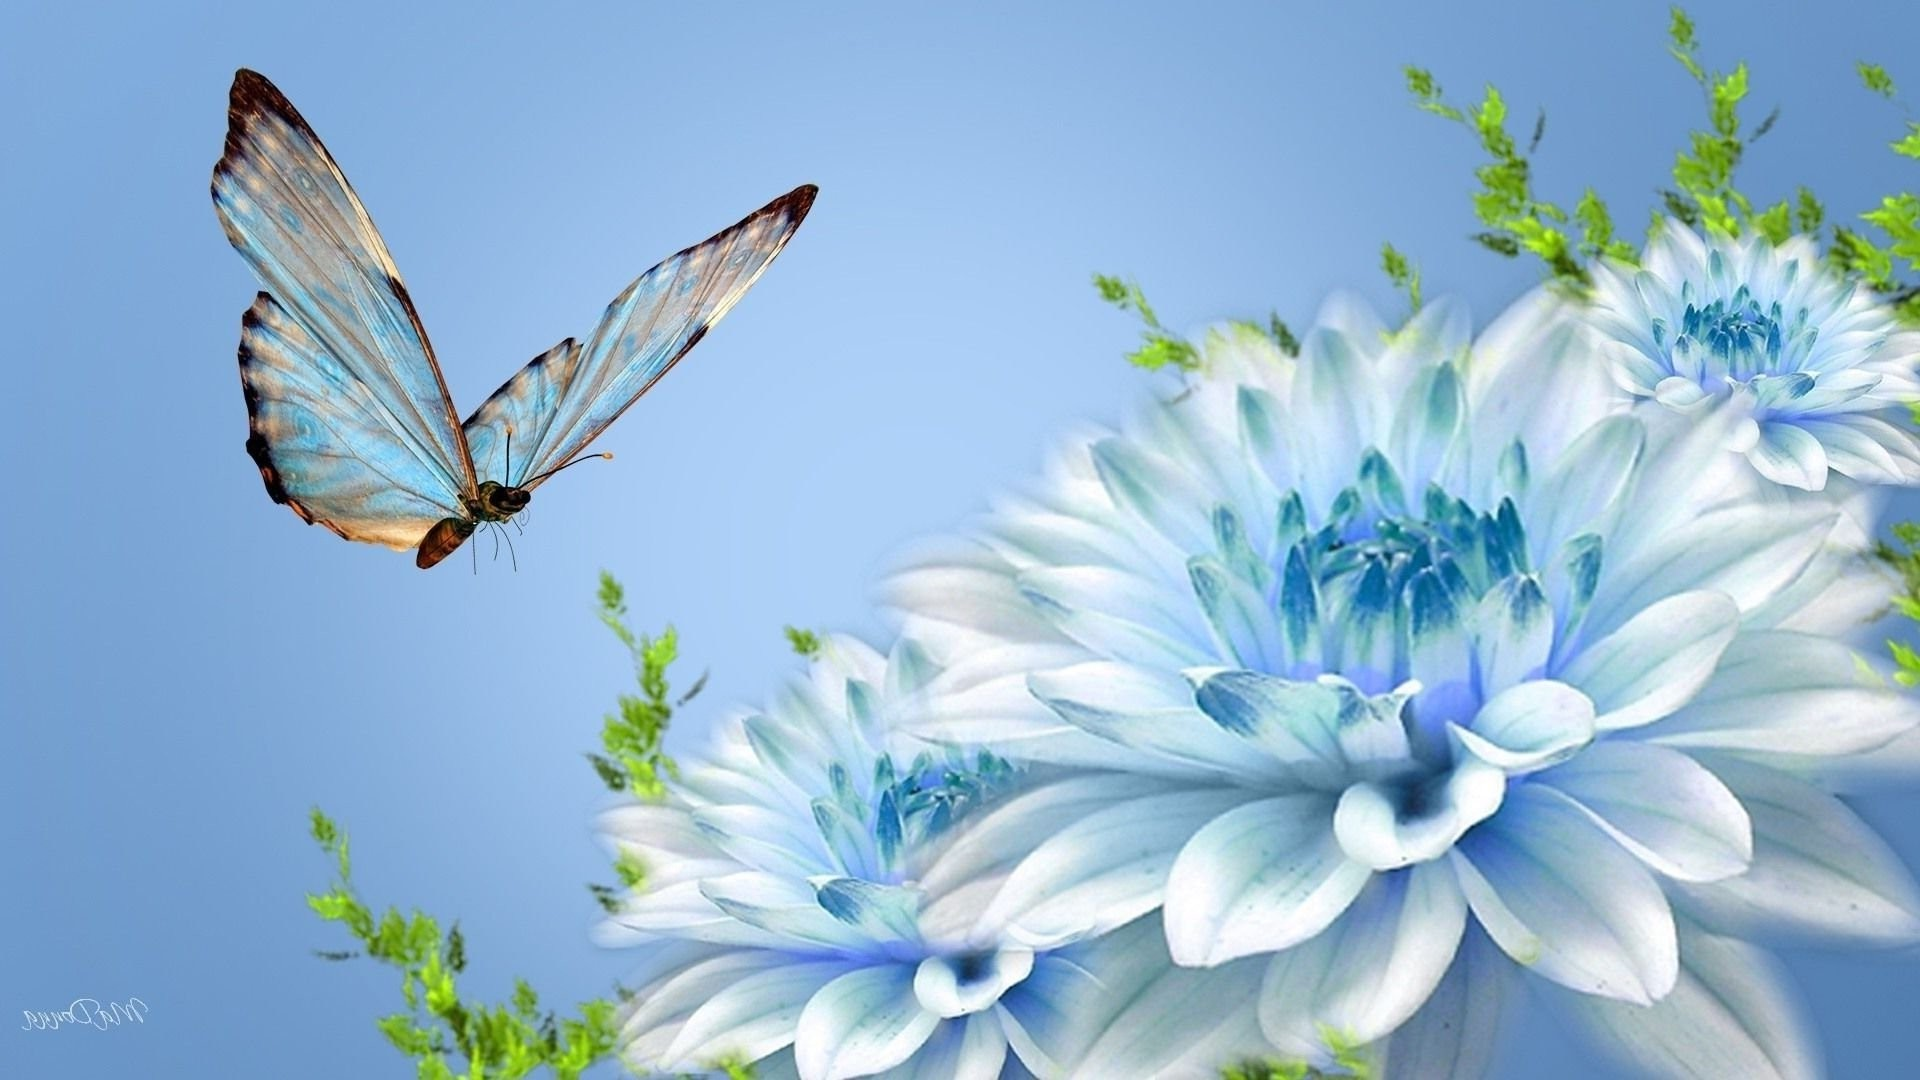 Beautiful butterflies and flowers wallpapers 56 images 1920x1080 butterfly wallpaper izmirmasajfo